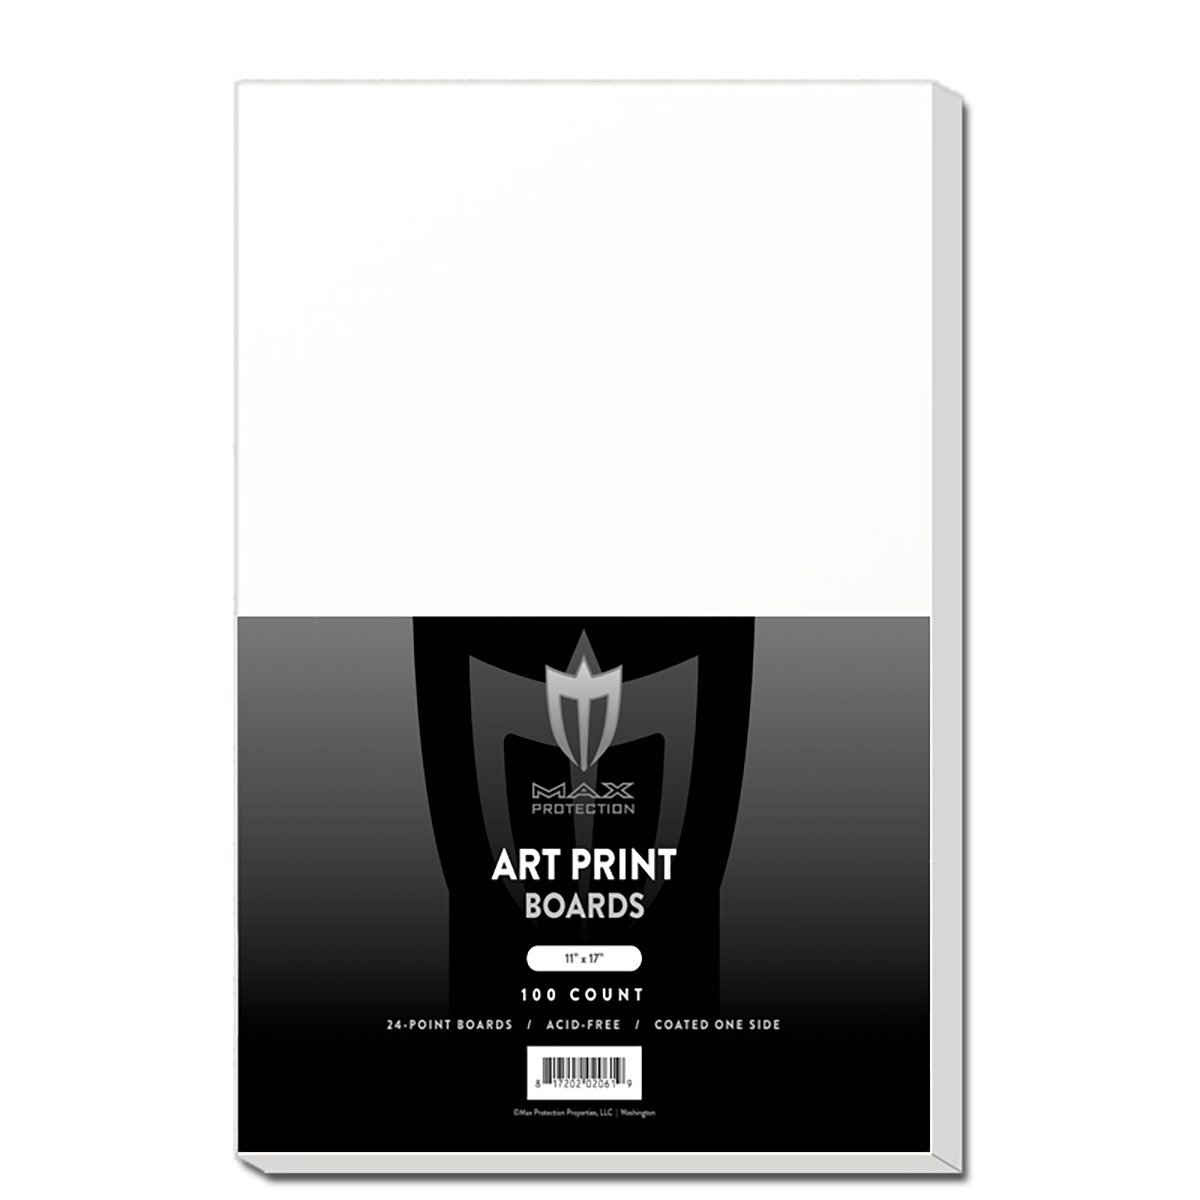 100 ART PRINT Size White Backing Boards by Max Pro (11'' x 17'') - Protect your Collectibles From Bending! by Max Protection